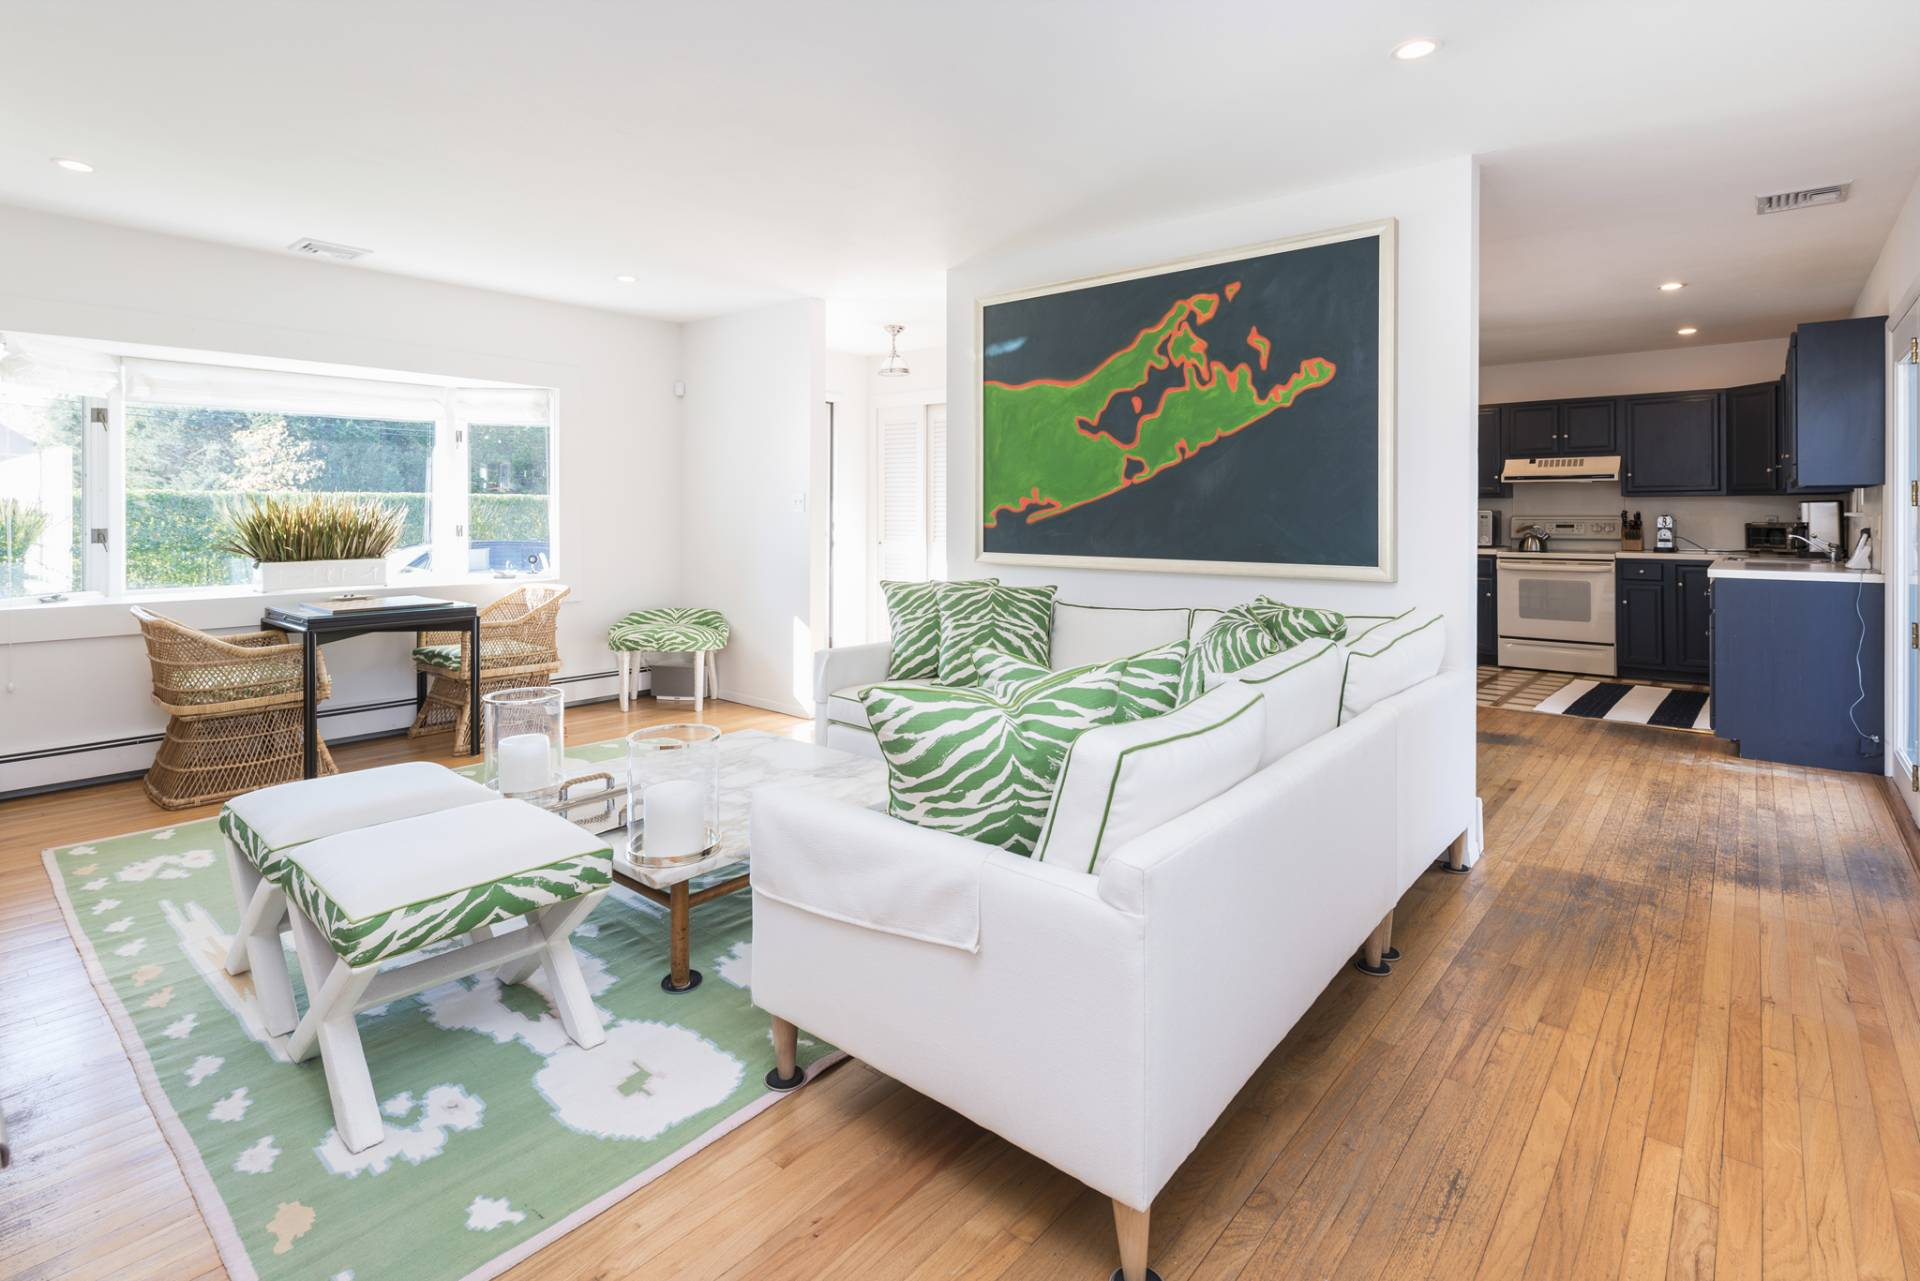 Additional photo for property listing at Don Draper's Retro Chic Beach Cottage In Quogue Estate Section  Quogue, Nueva York